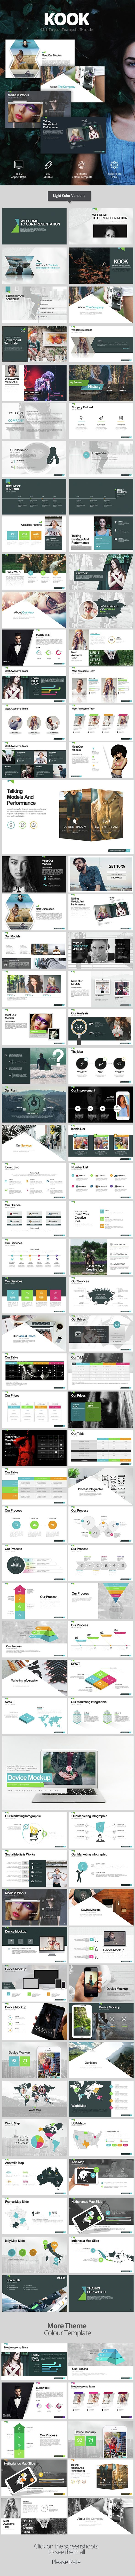 KooK Powerpoint Presentation Template. Download here: http://graphicriver.net/item/kook-powerpoint-presentation/15324176?ref=ksioks